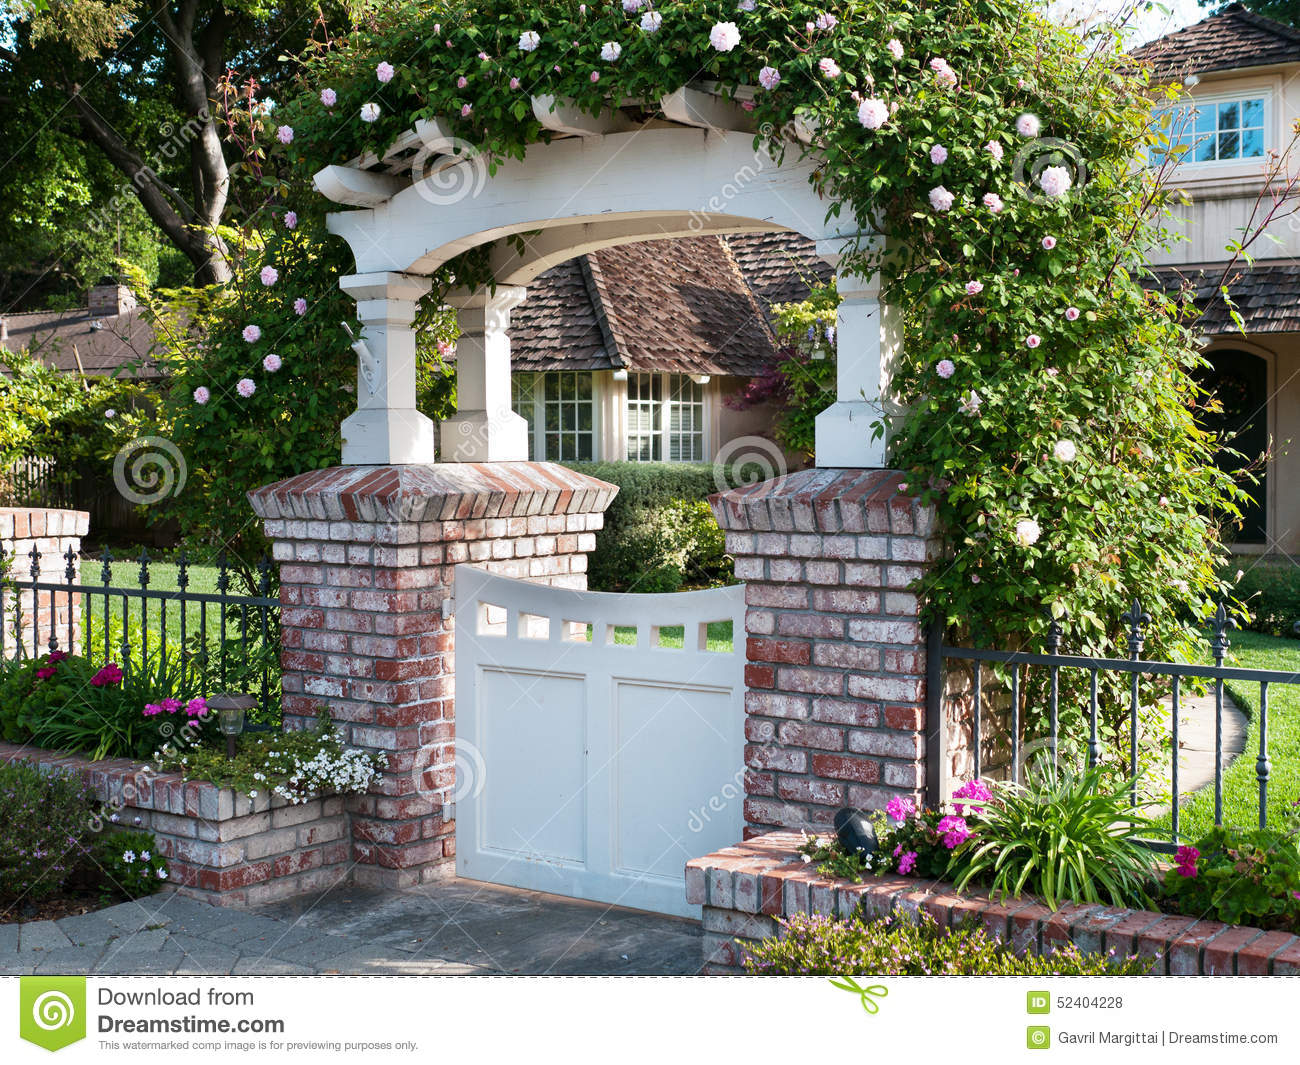 back yard garage ideas - Decorative Gate With Roses Flowers & Nature Background